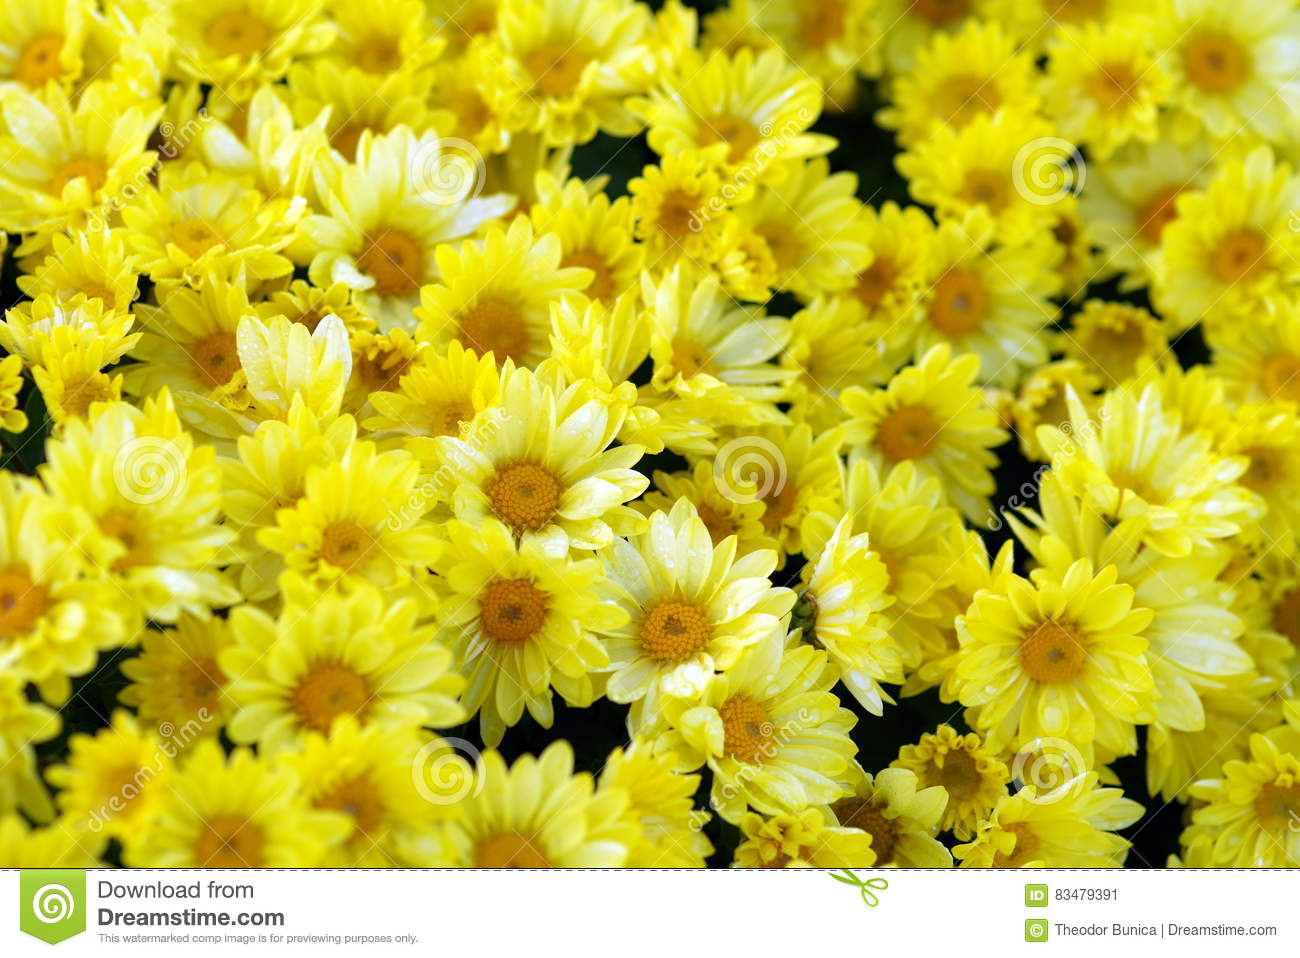 Chrysanthemums. Background of yellow flowers